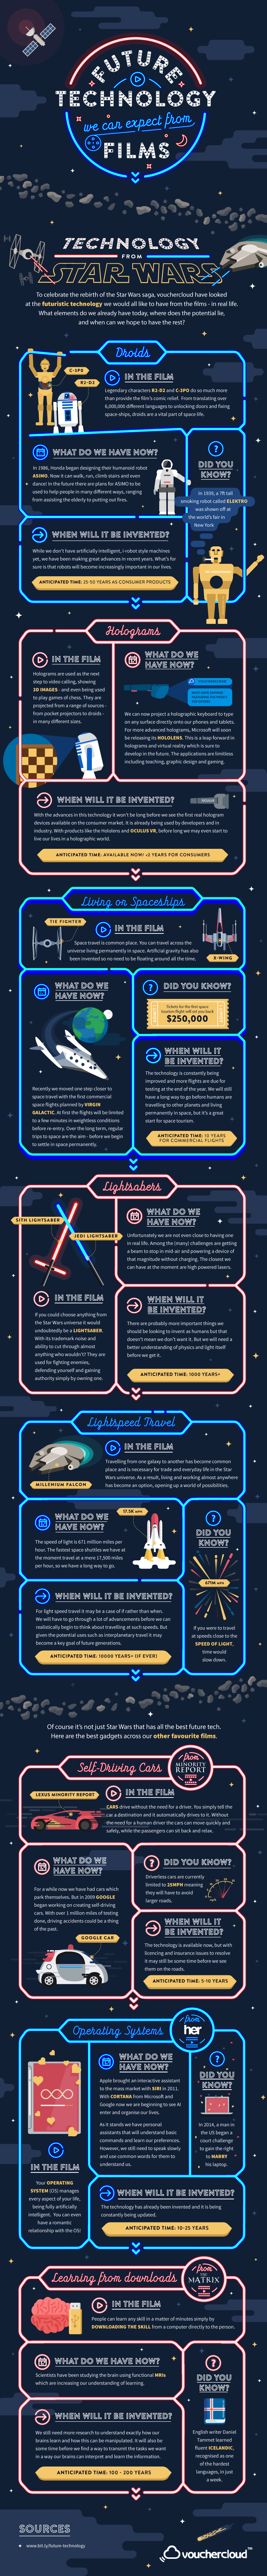 Future Technology from Films Infographic